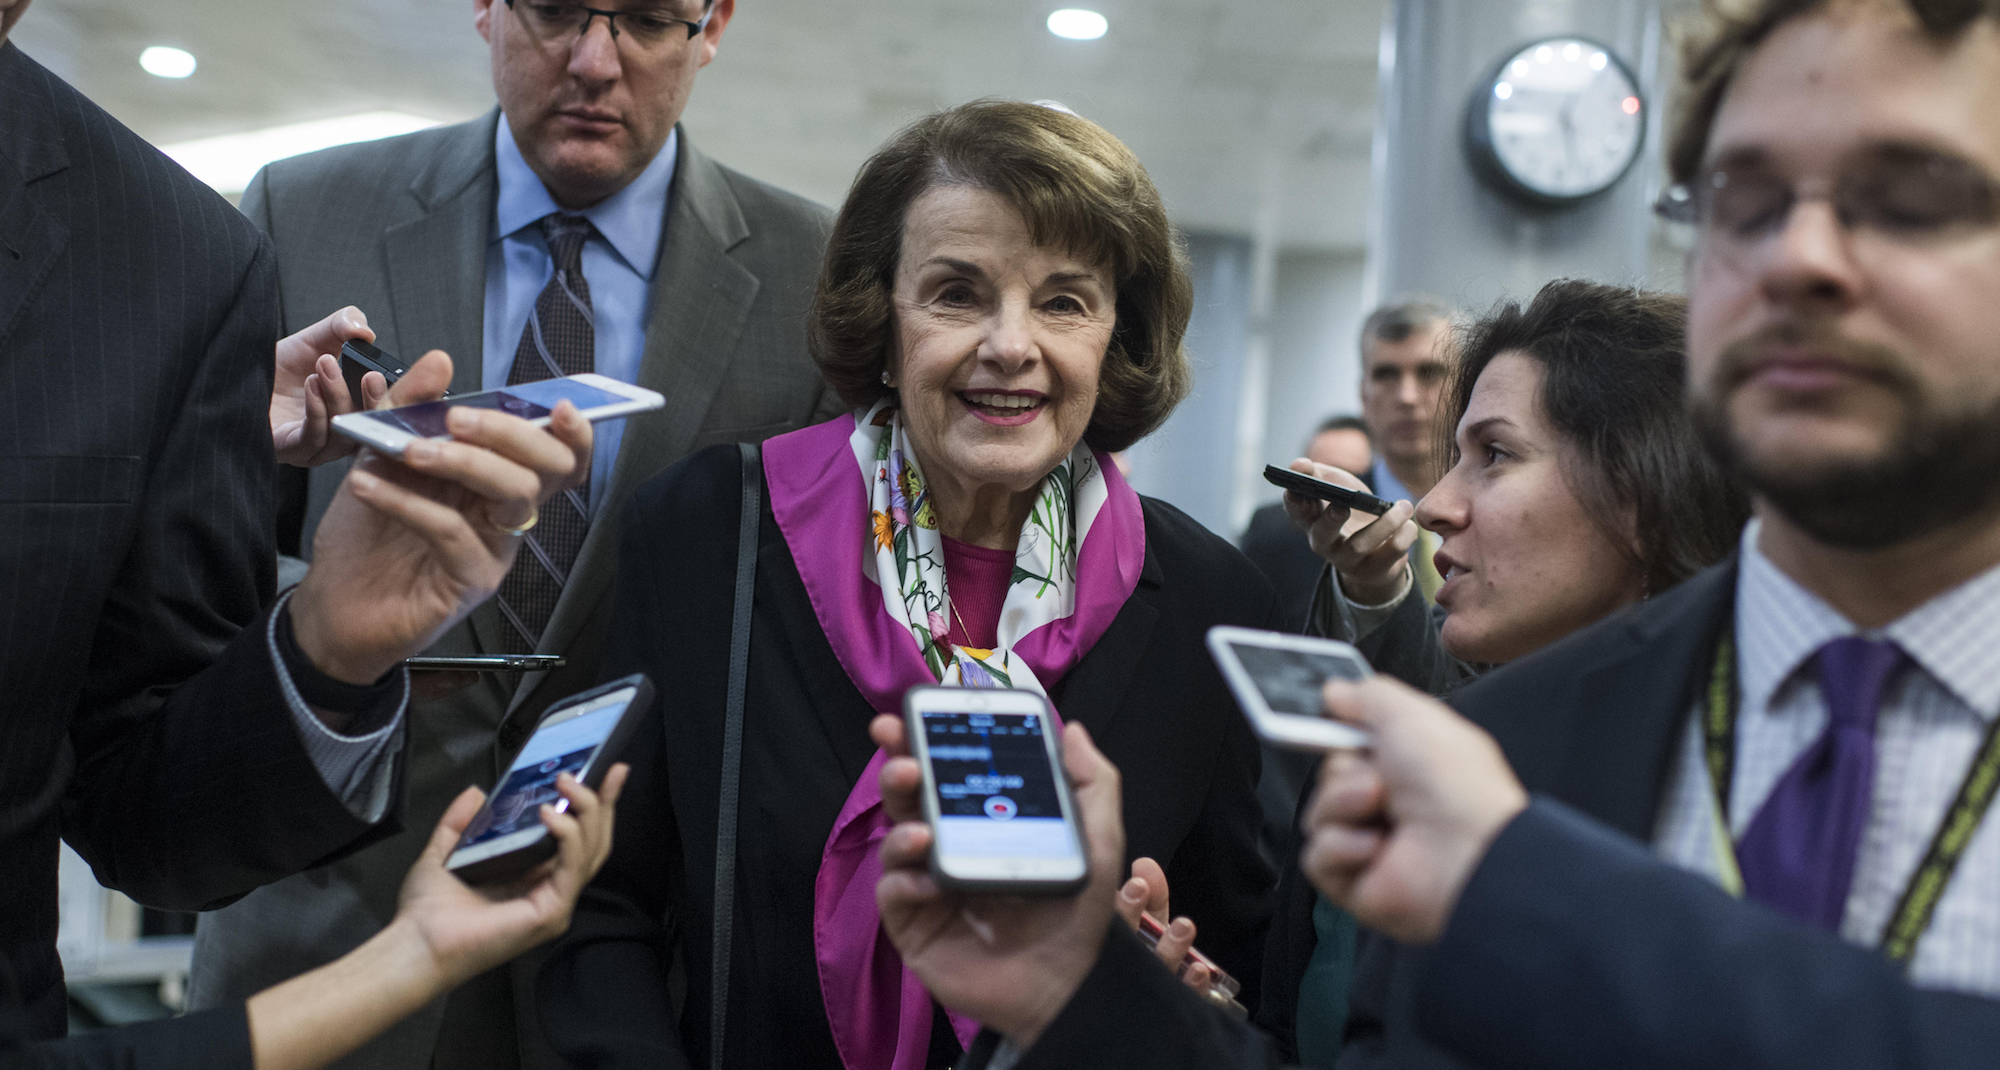 Trump Once Again Employs Anti-Semitism by Calling Feinstein 'Sneaky'